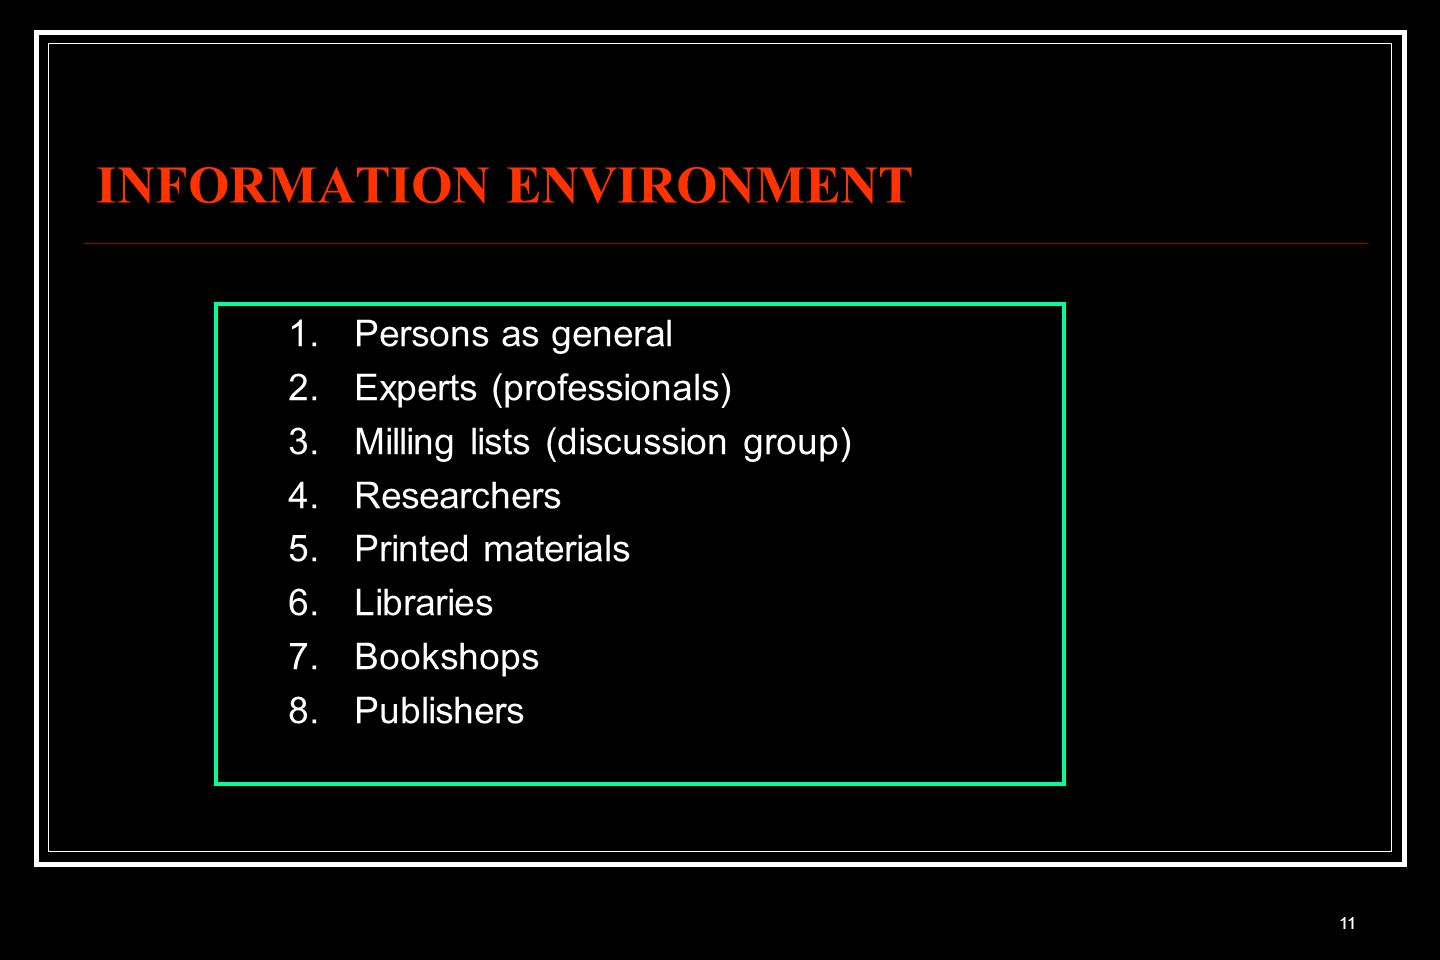 11 INFORMATION ENVIRONMENT 1.Persons as general 2.Experts (professionals) 3.Milling lists (discussion group) 4.Researchers 5.Printed materials 6.Libraries 7.Bookshops 8.Publishers